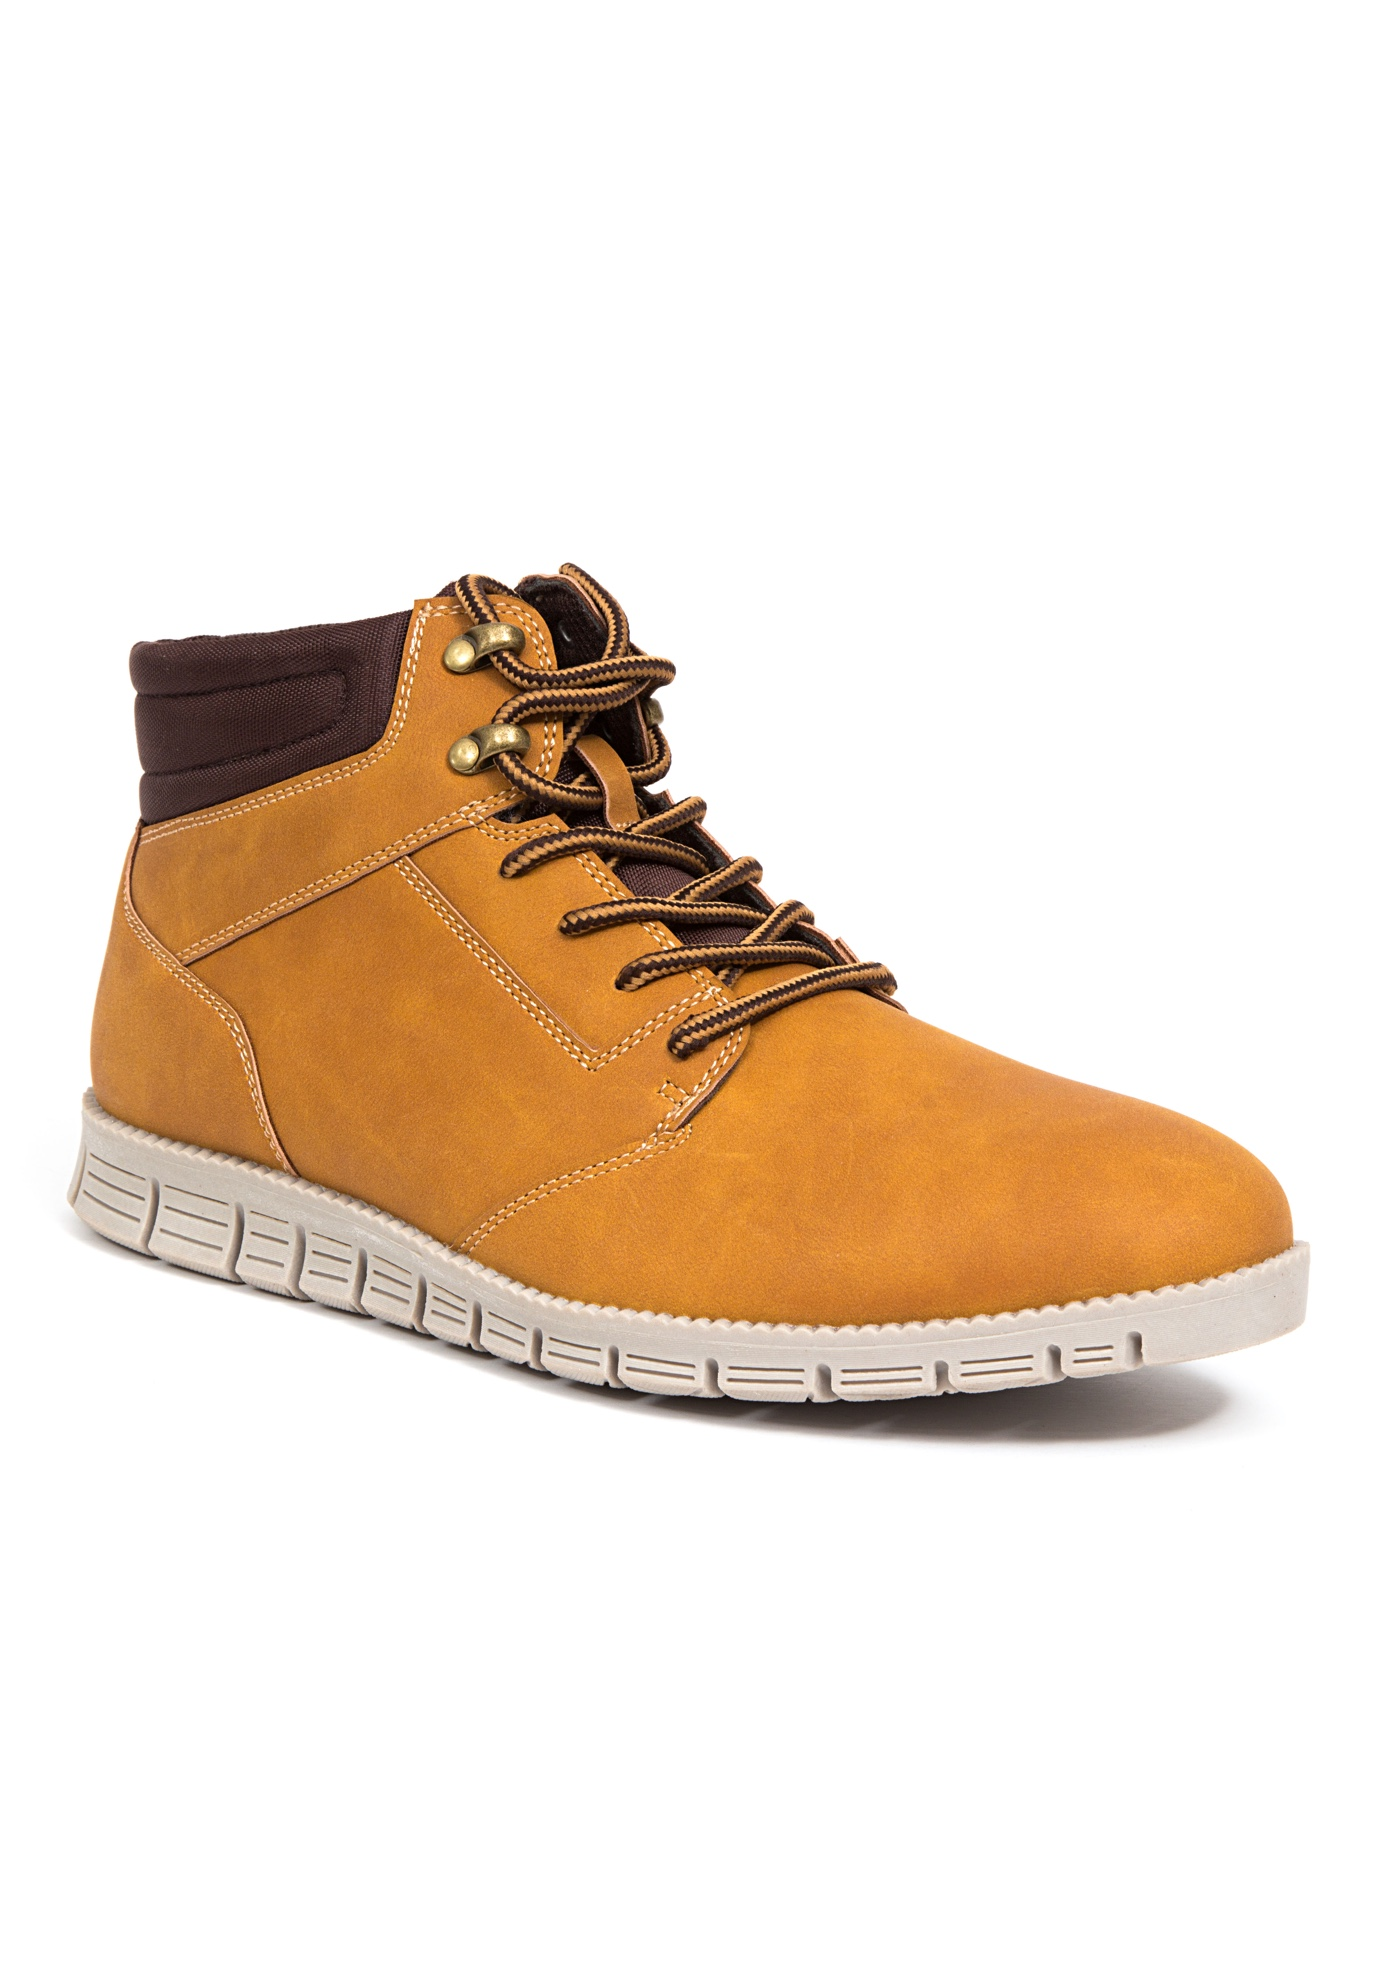 Deer Stags® Archer Comfort Memory Foam Sneaker Boot Hybrid,